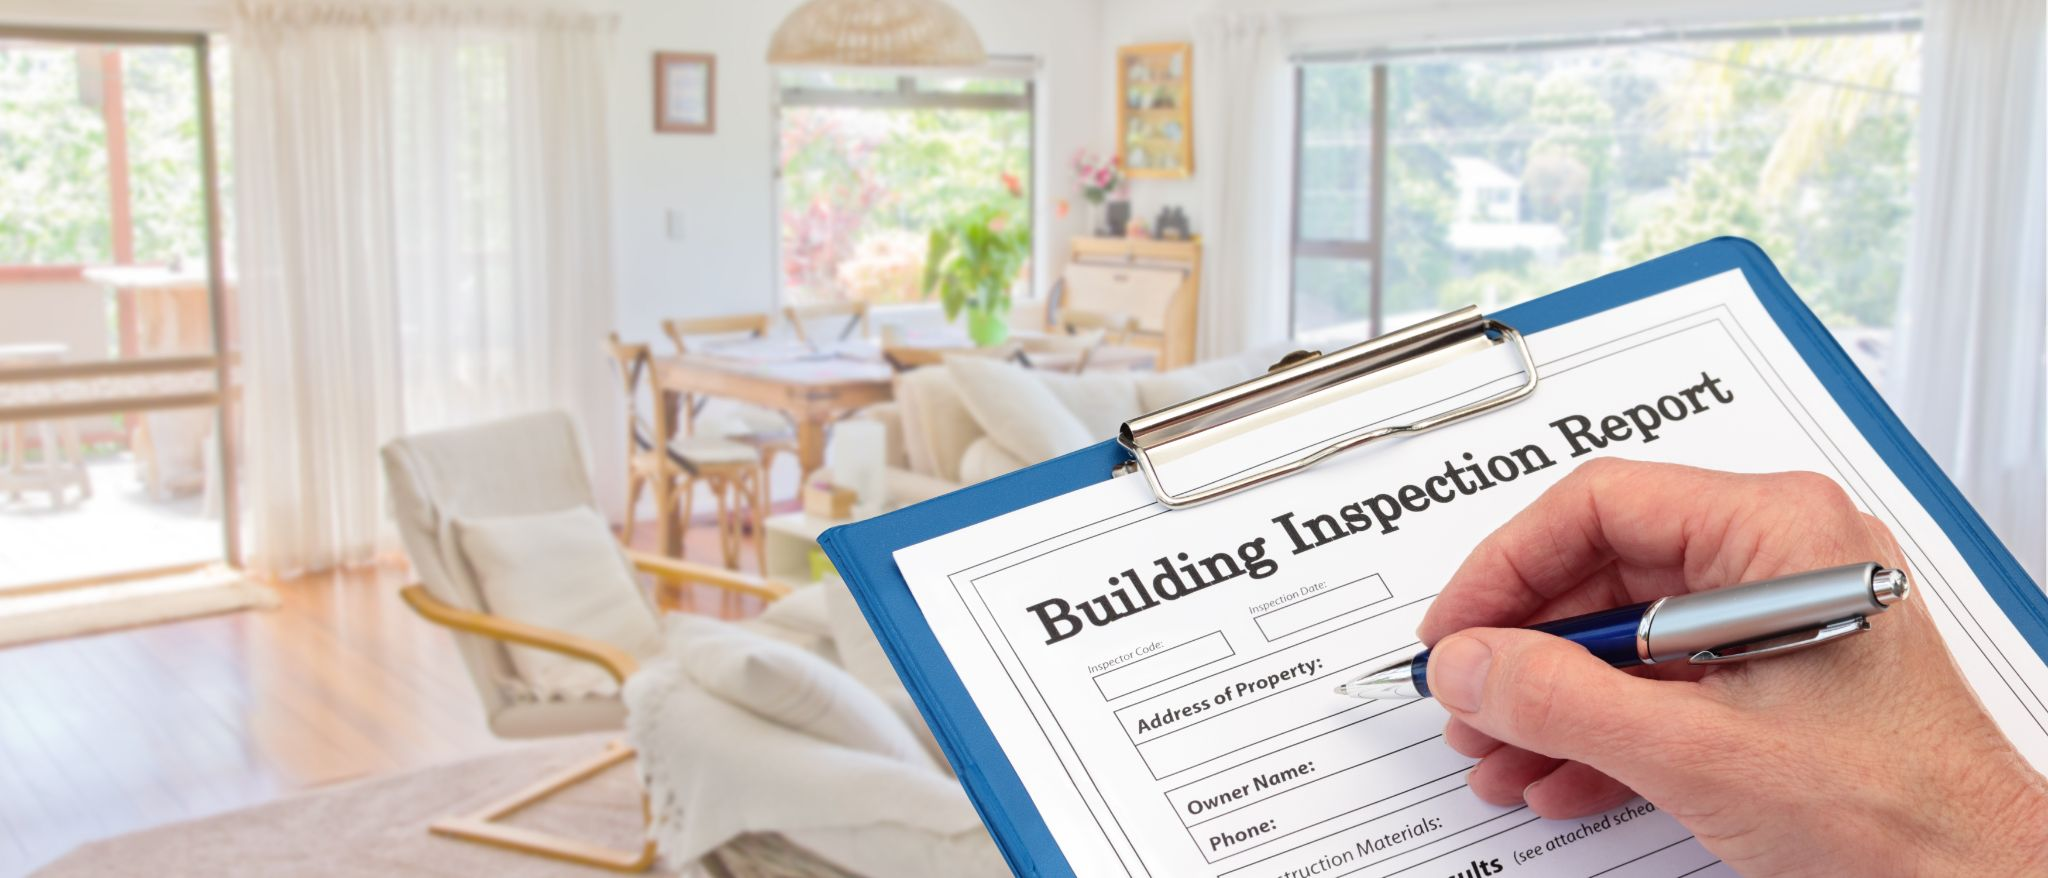 Structural engineer filling out a building inspection report.